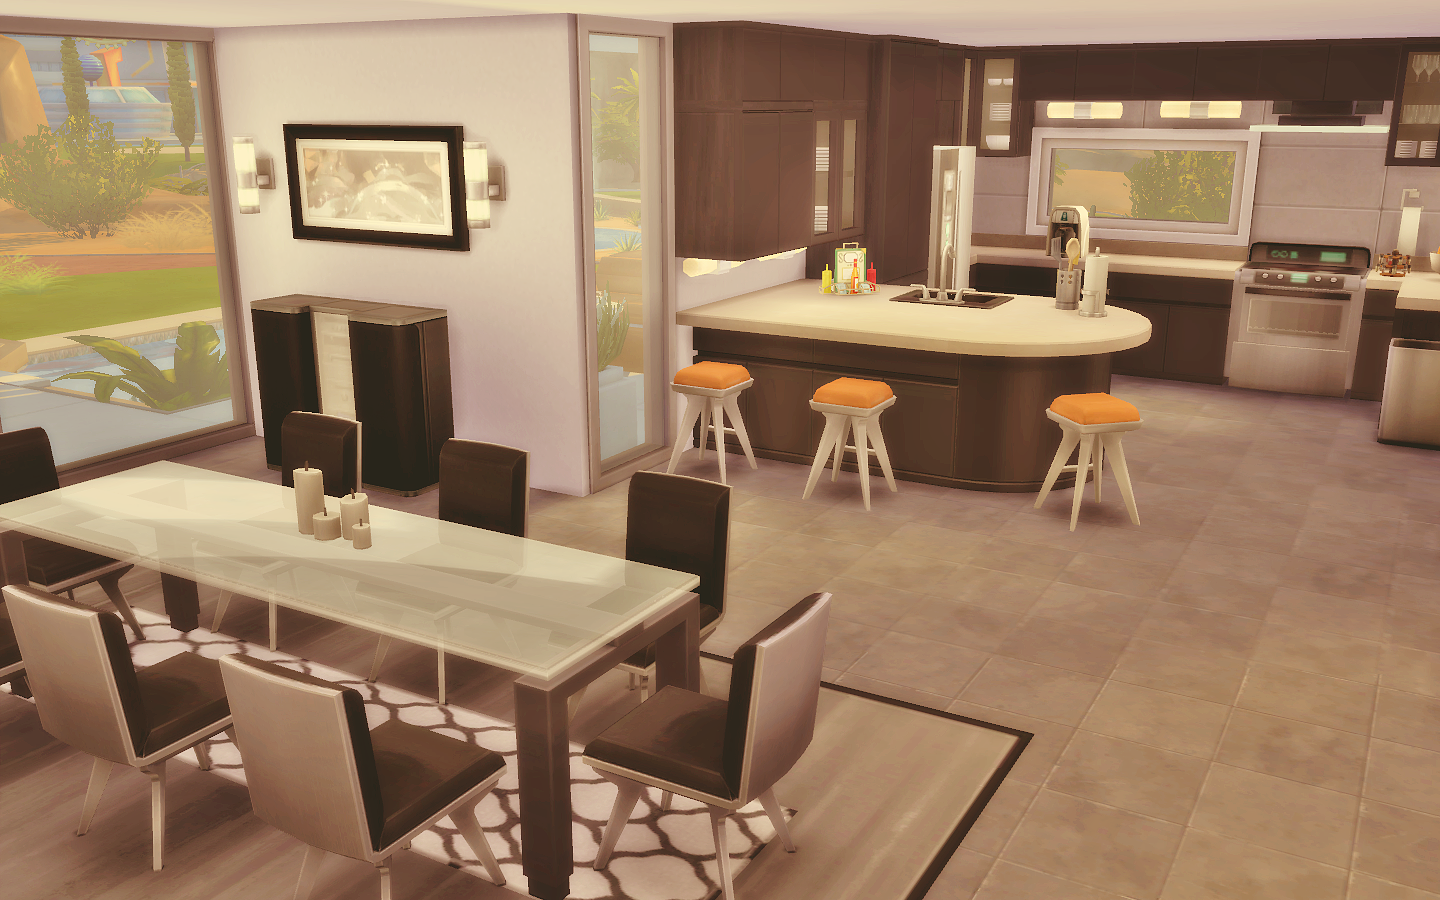 House 06 by Via Sims